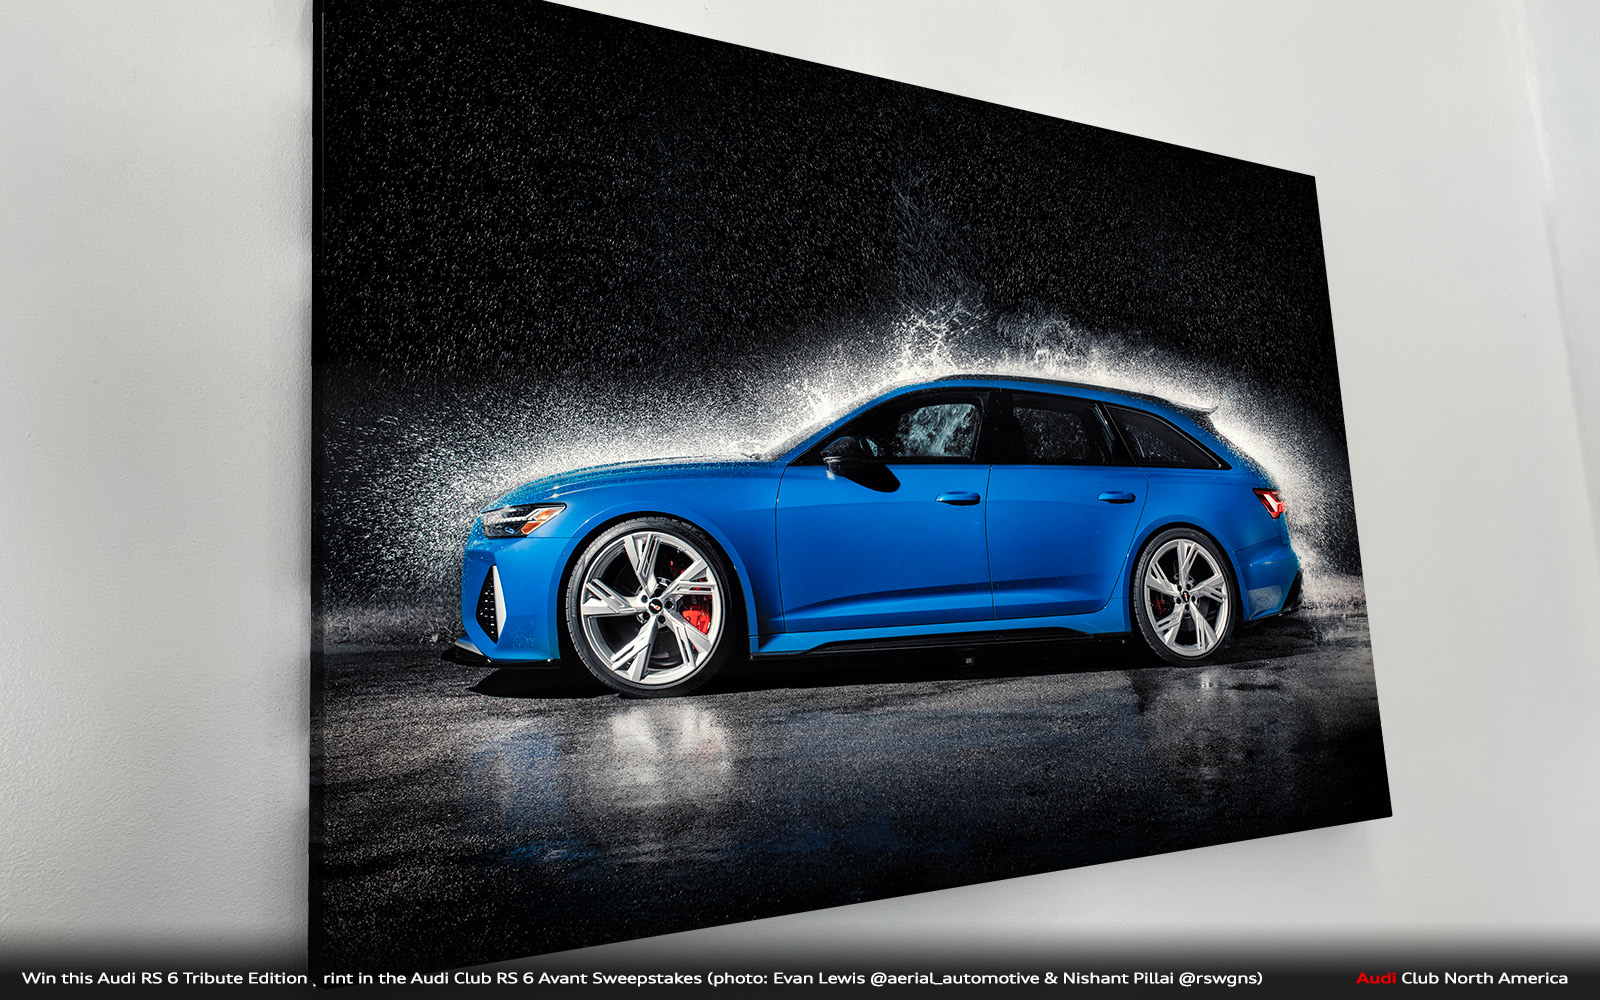 Win This Audi RS 6 RS Tribute edition Print in the Audi Club RS 6 Avant Sweepstakes